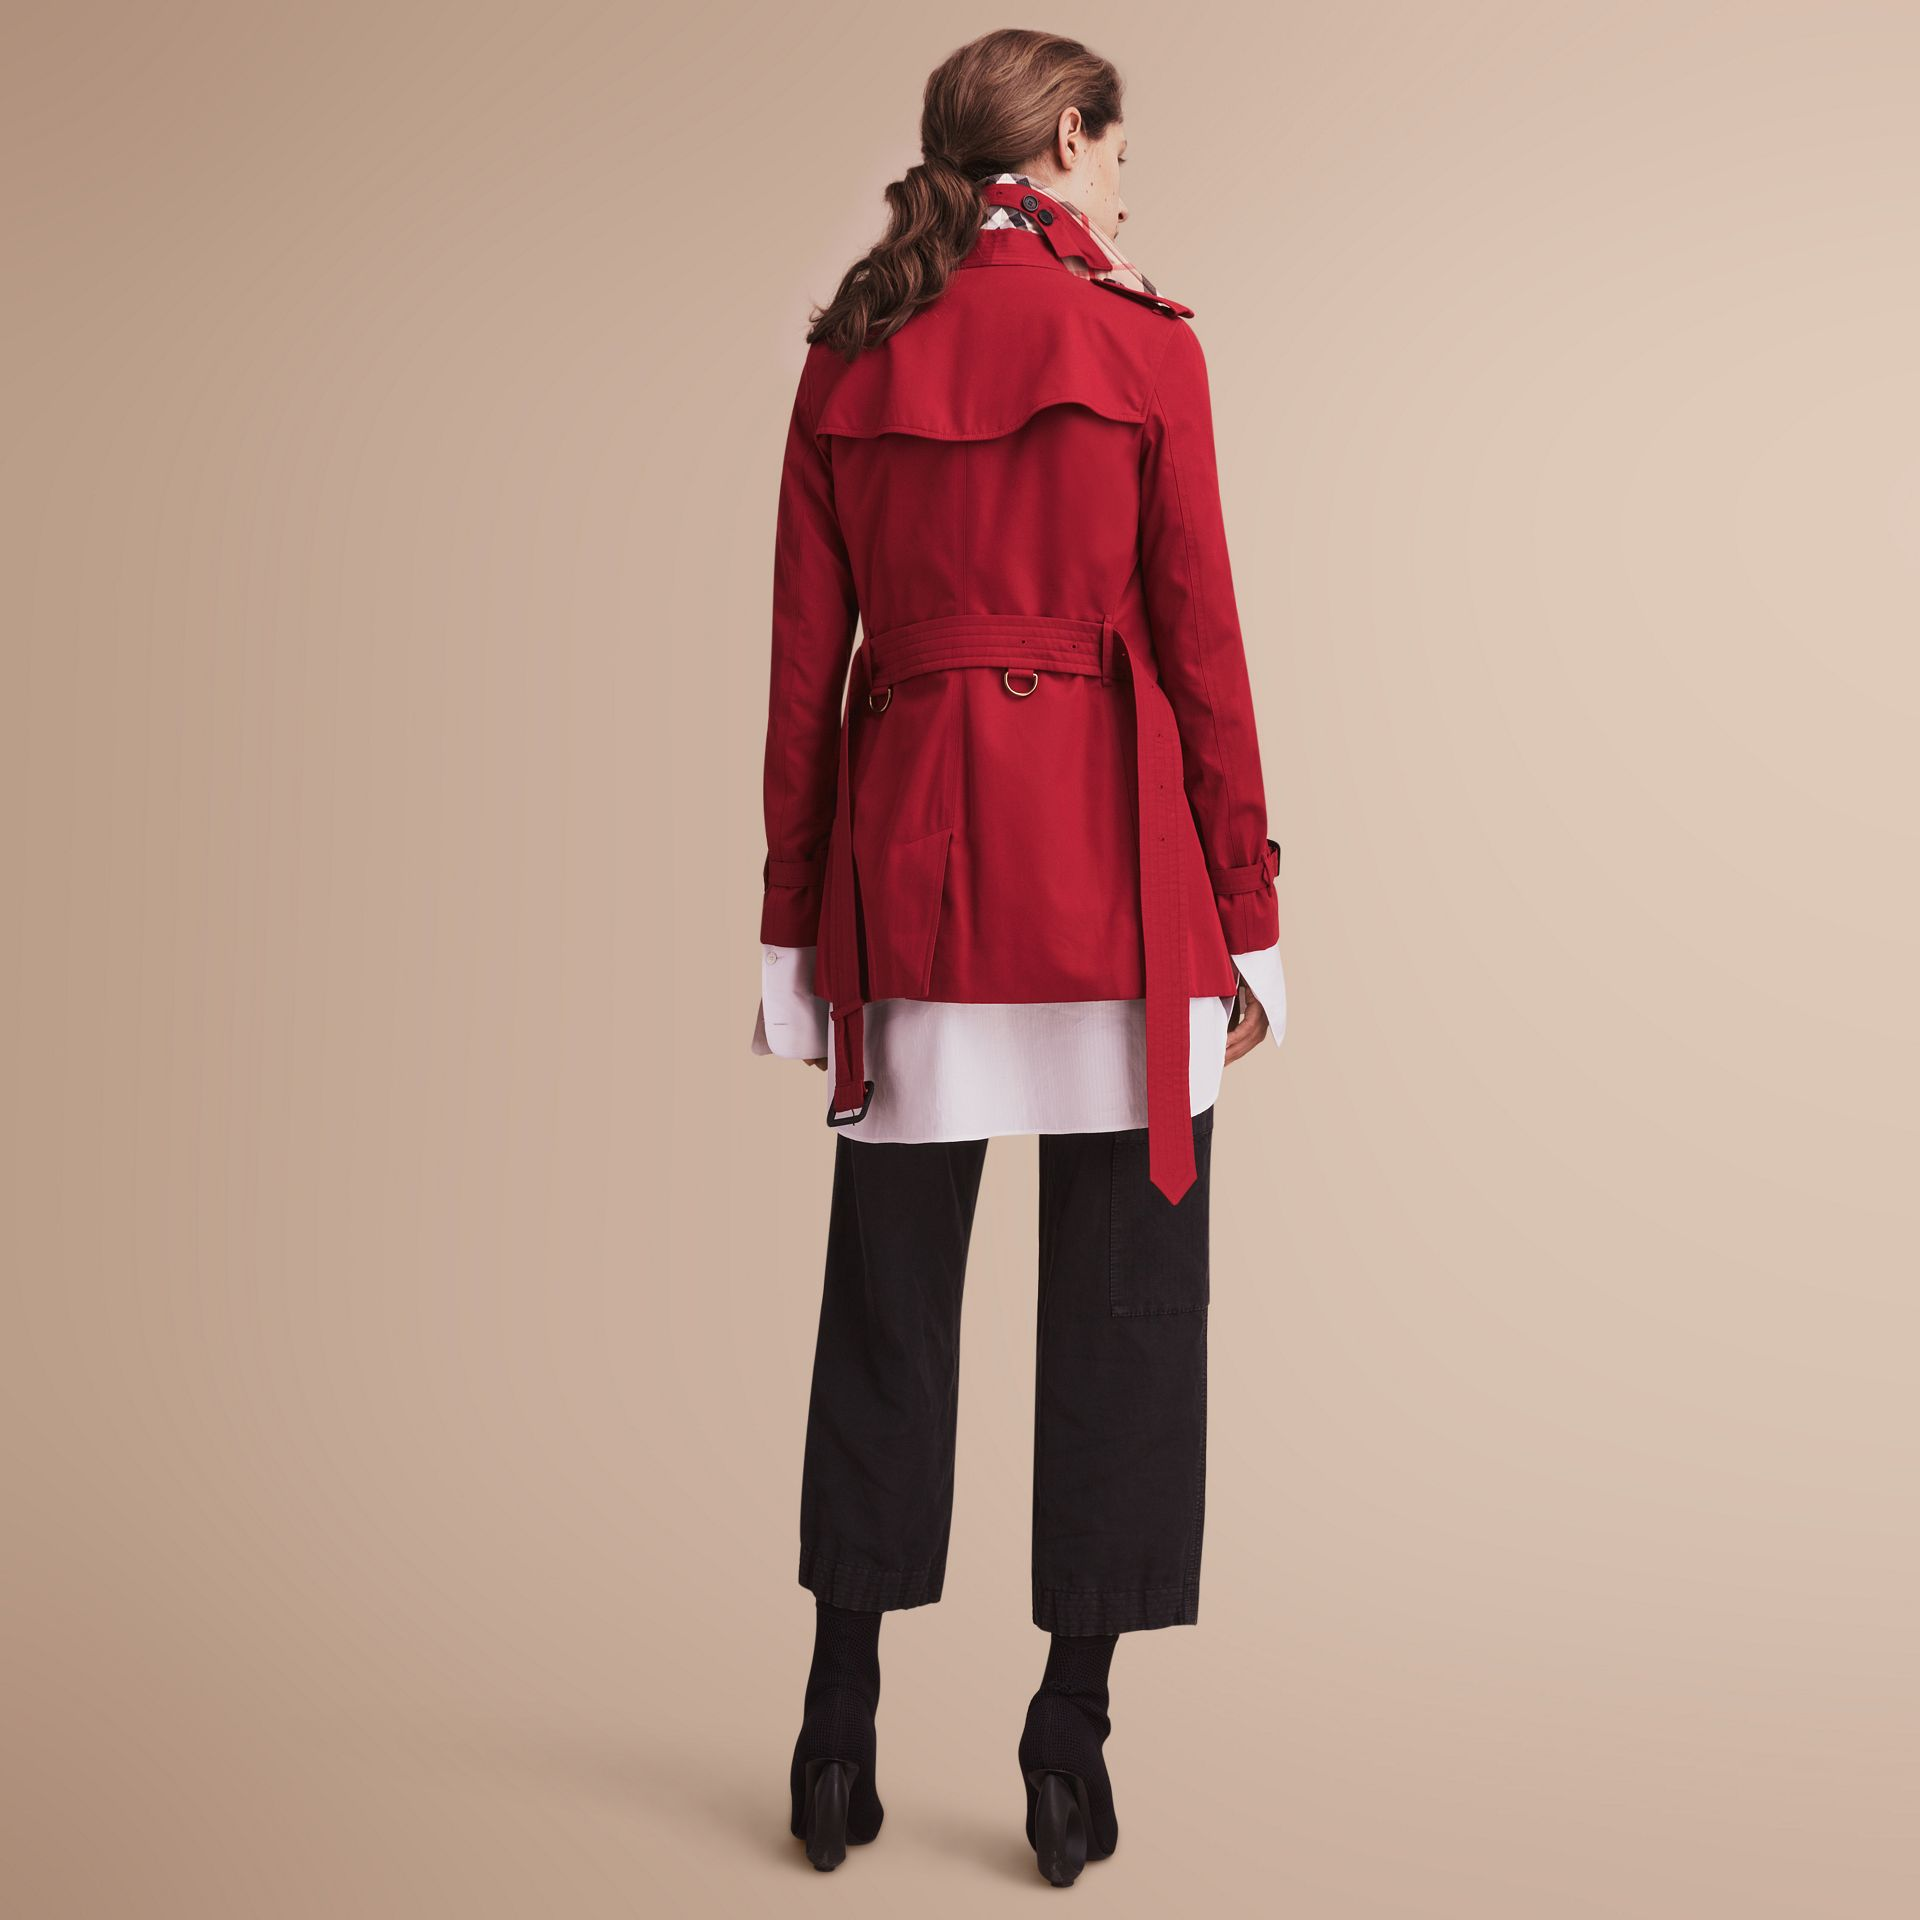 The Kensington – Short Heritage Trench Coat in Parade Red - Women | Burberry - gallery image 3